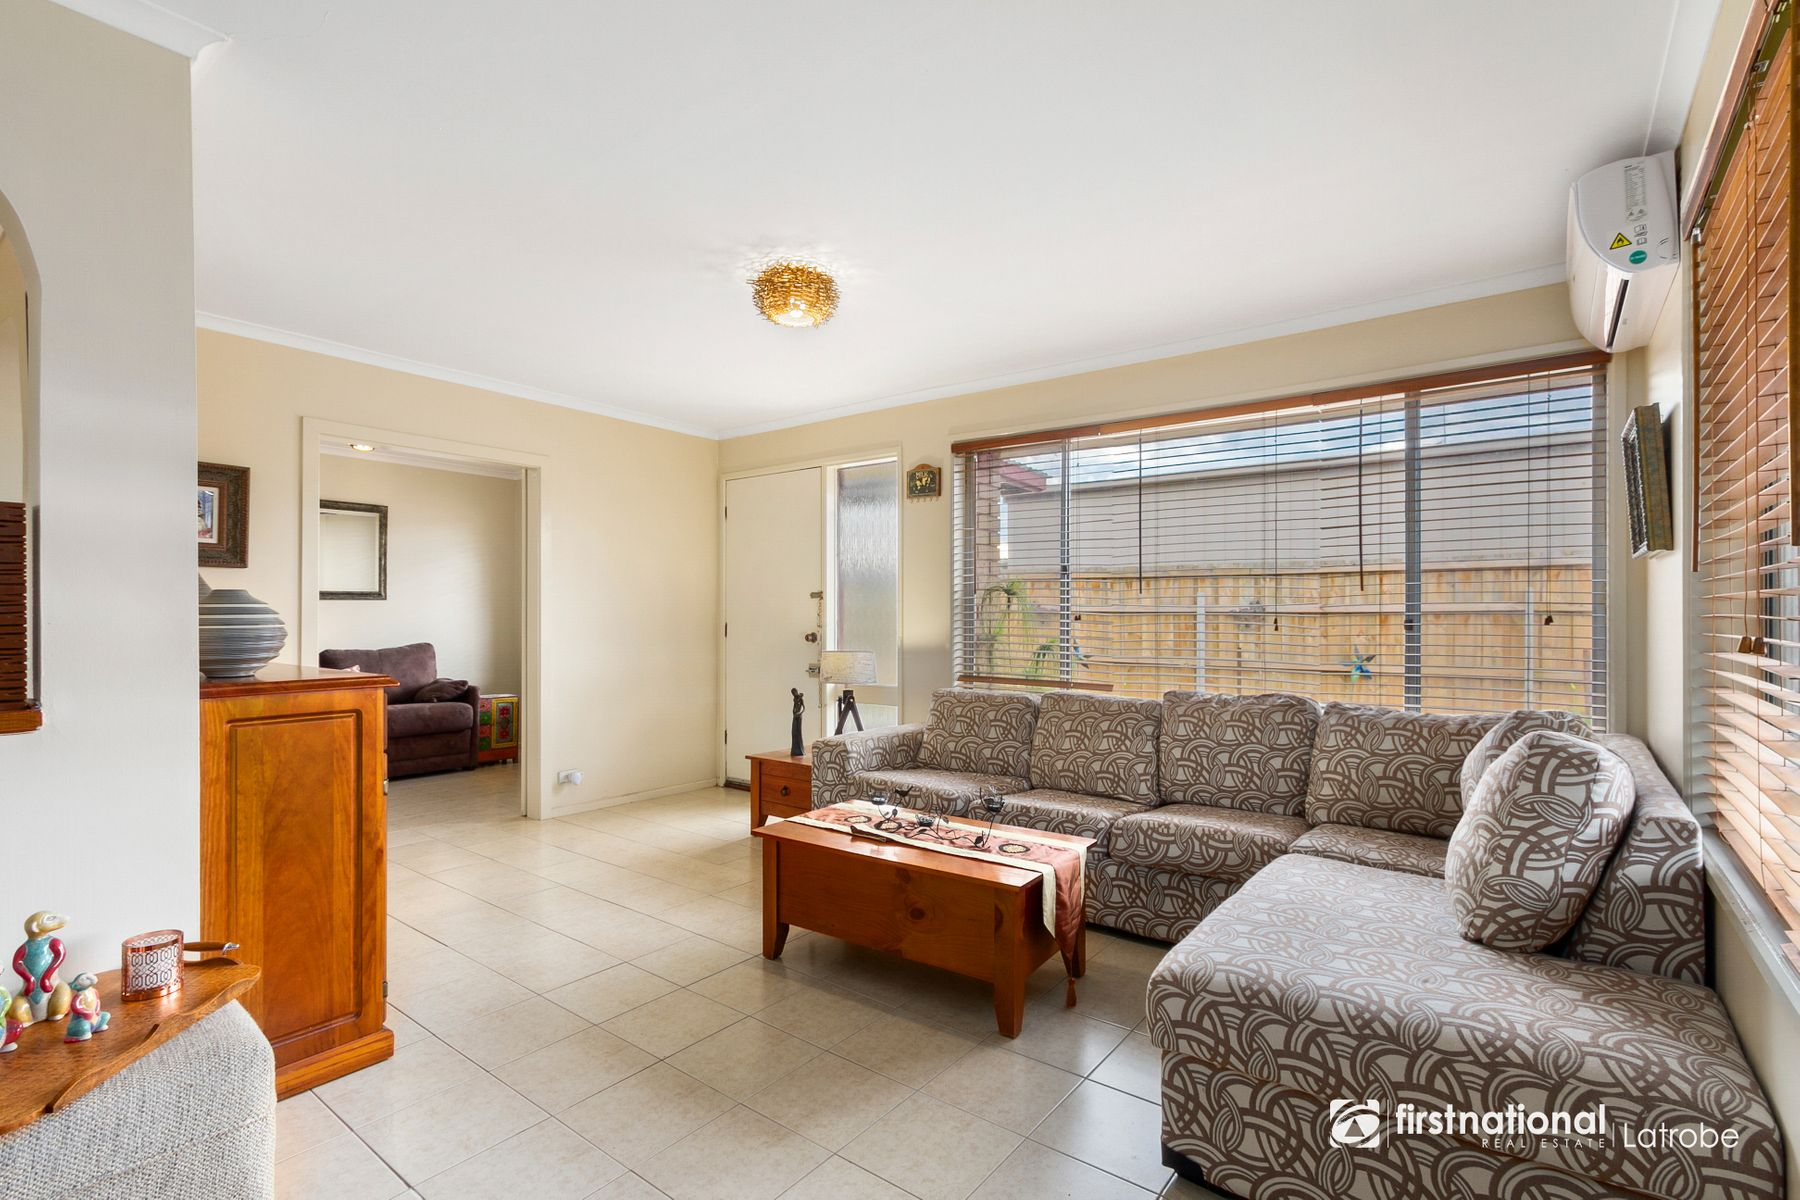 2/34 Spring Court, Morwell, VIC 3840